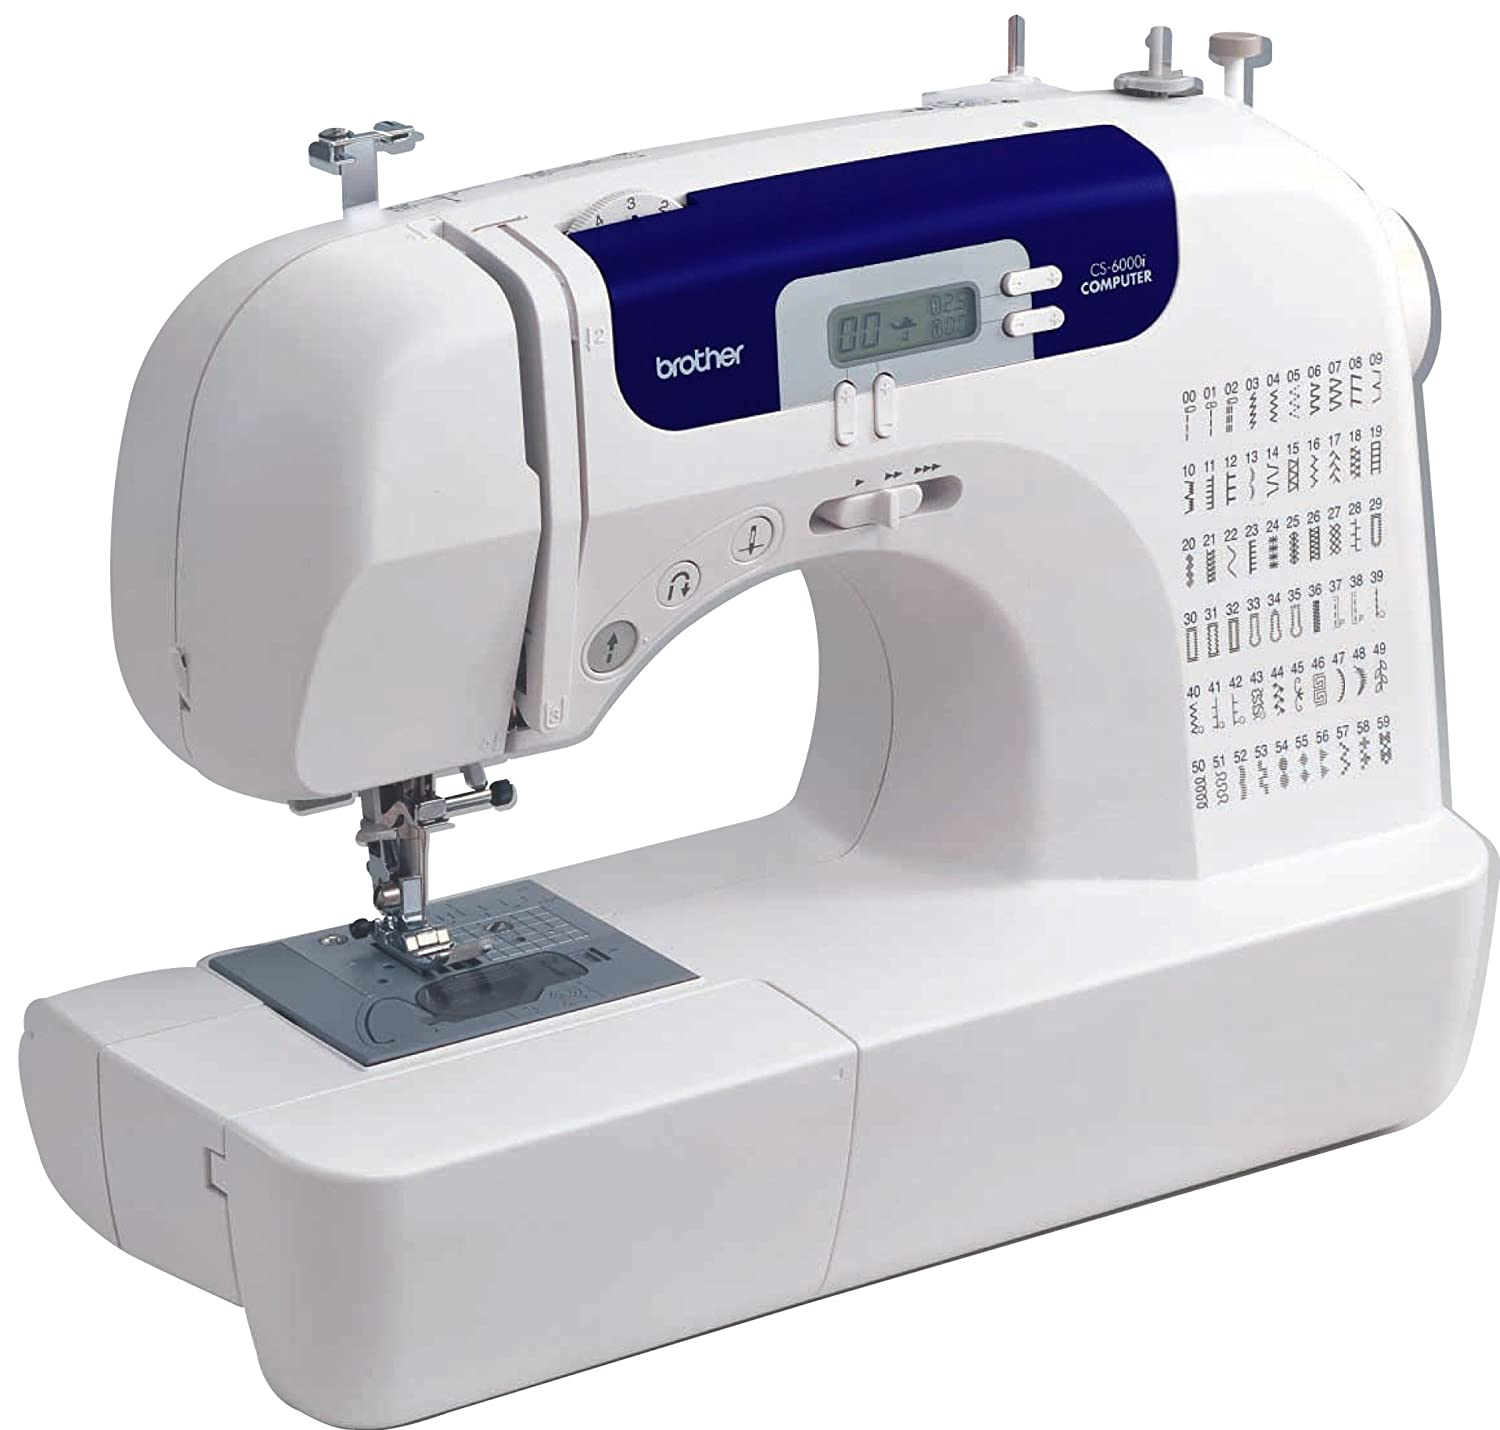 Brother Sewing Machine Comparison